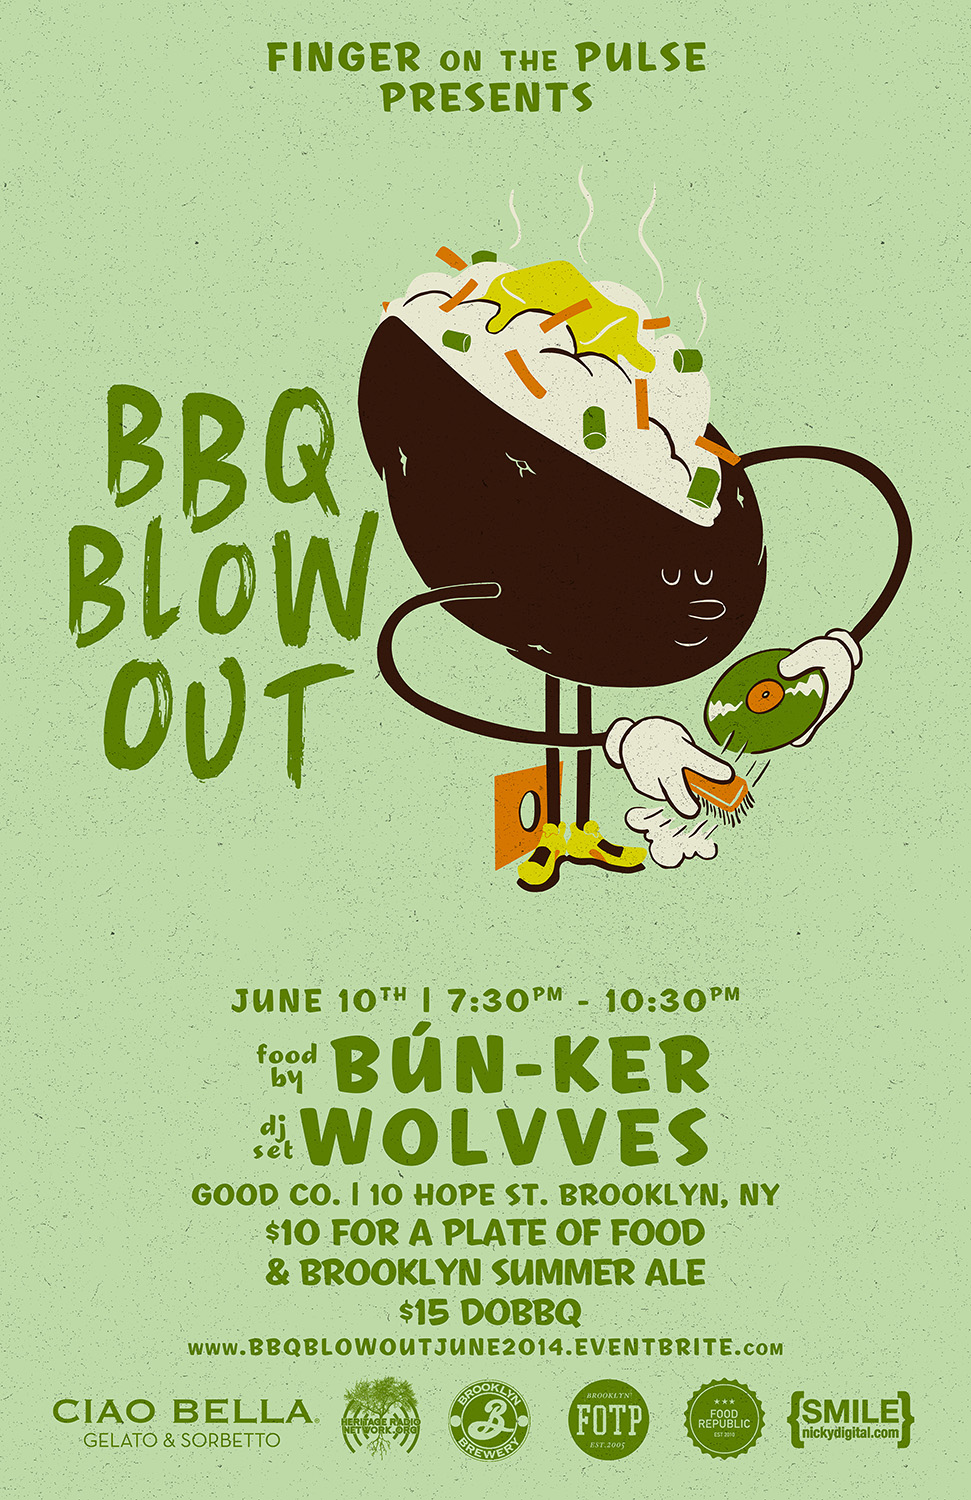 May_BBQ_Blowout_Poster-2014-MD.jpg